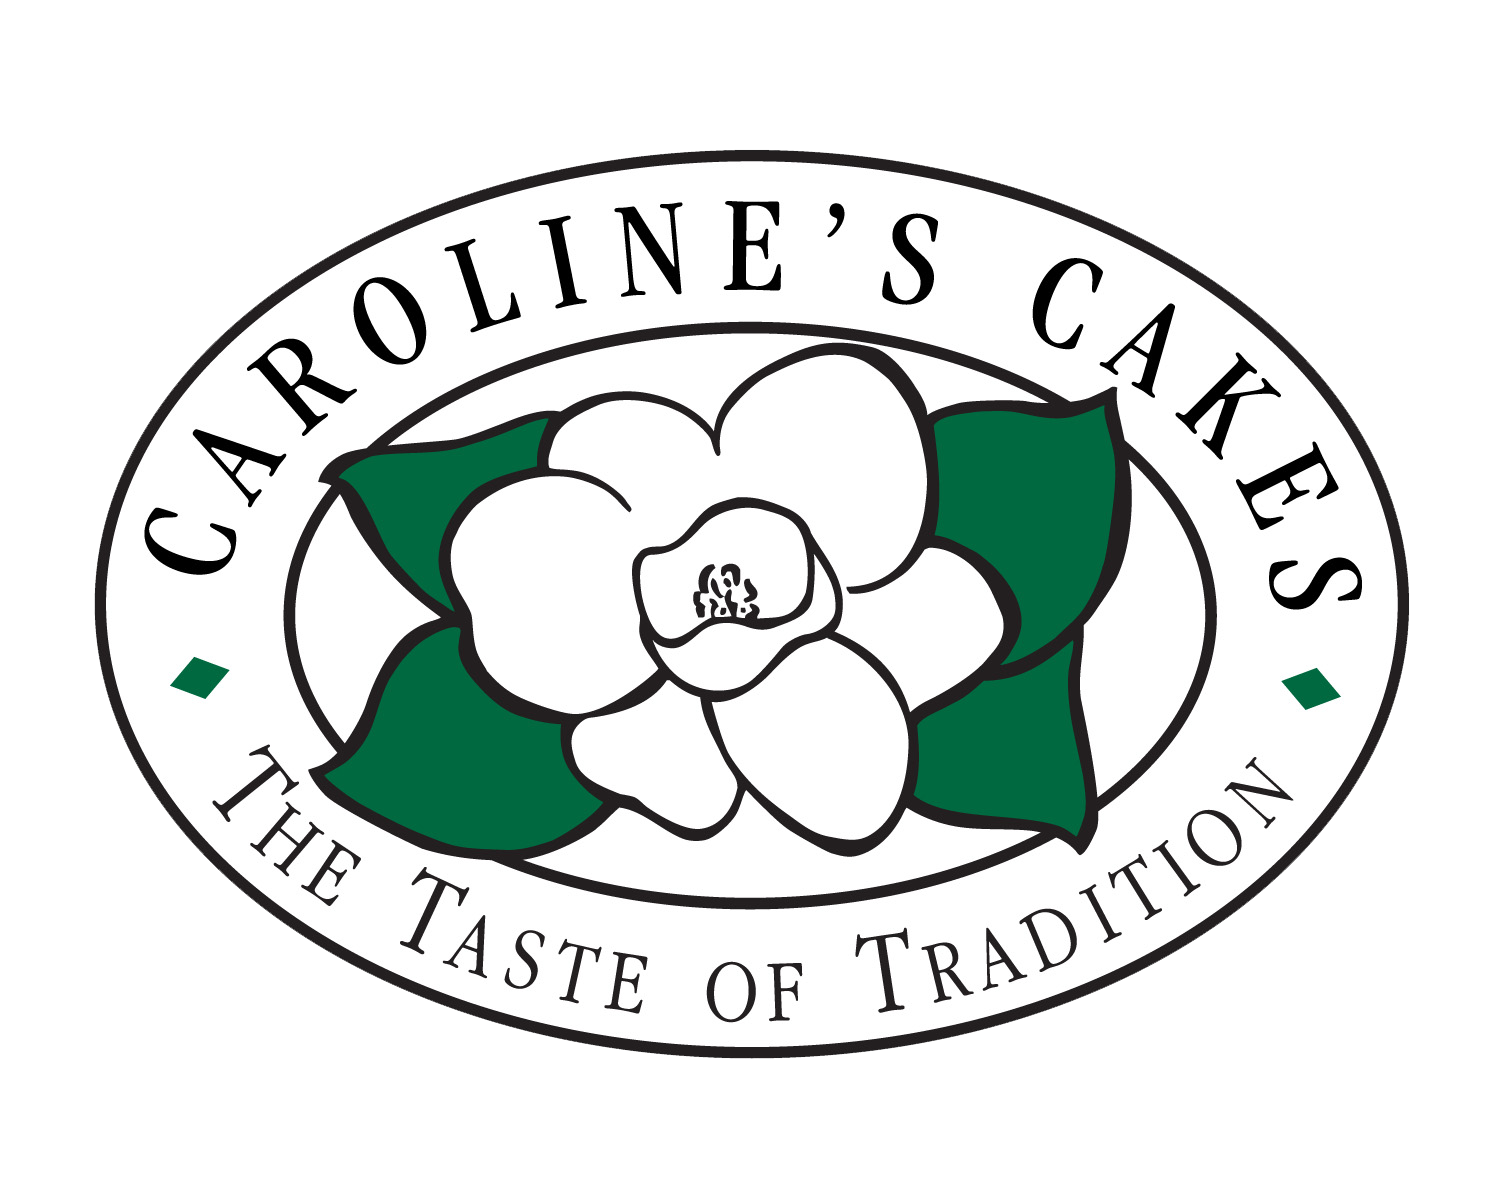 Caroline's Cakes coupons and promo codes